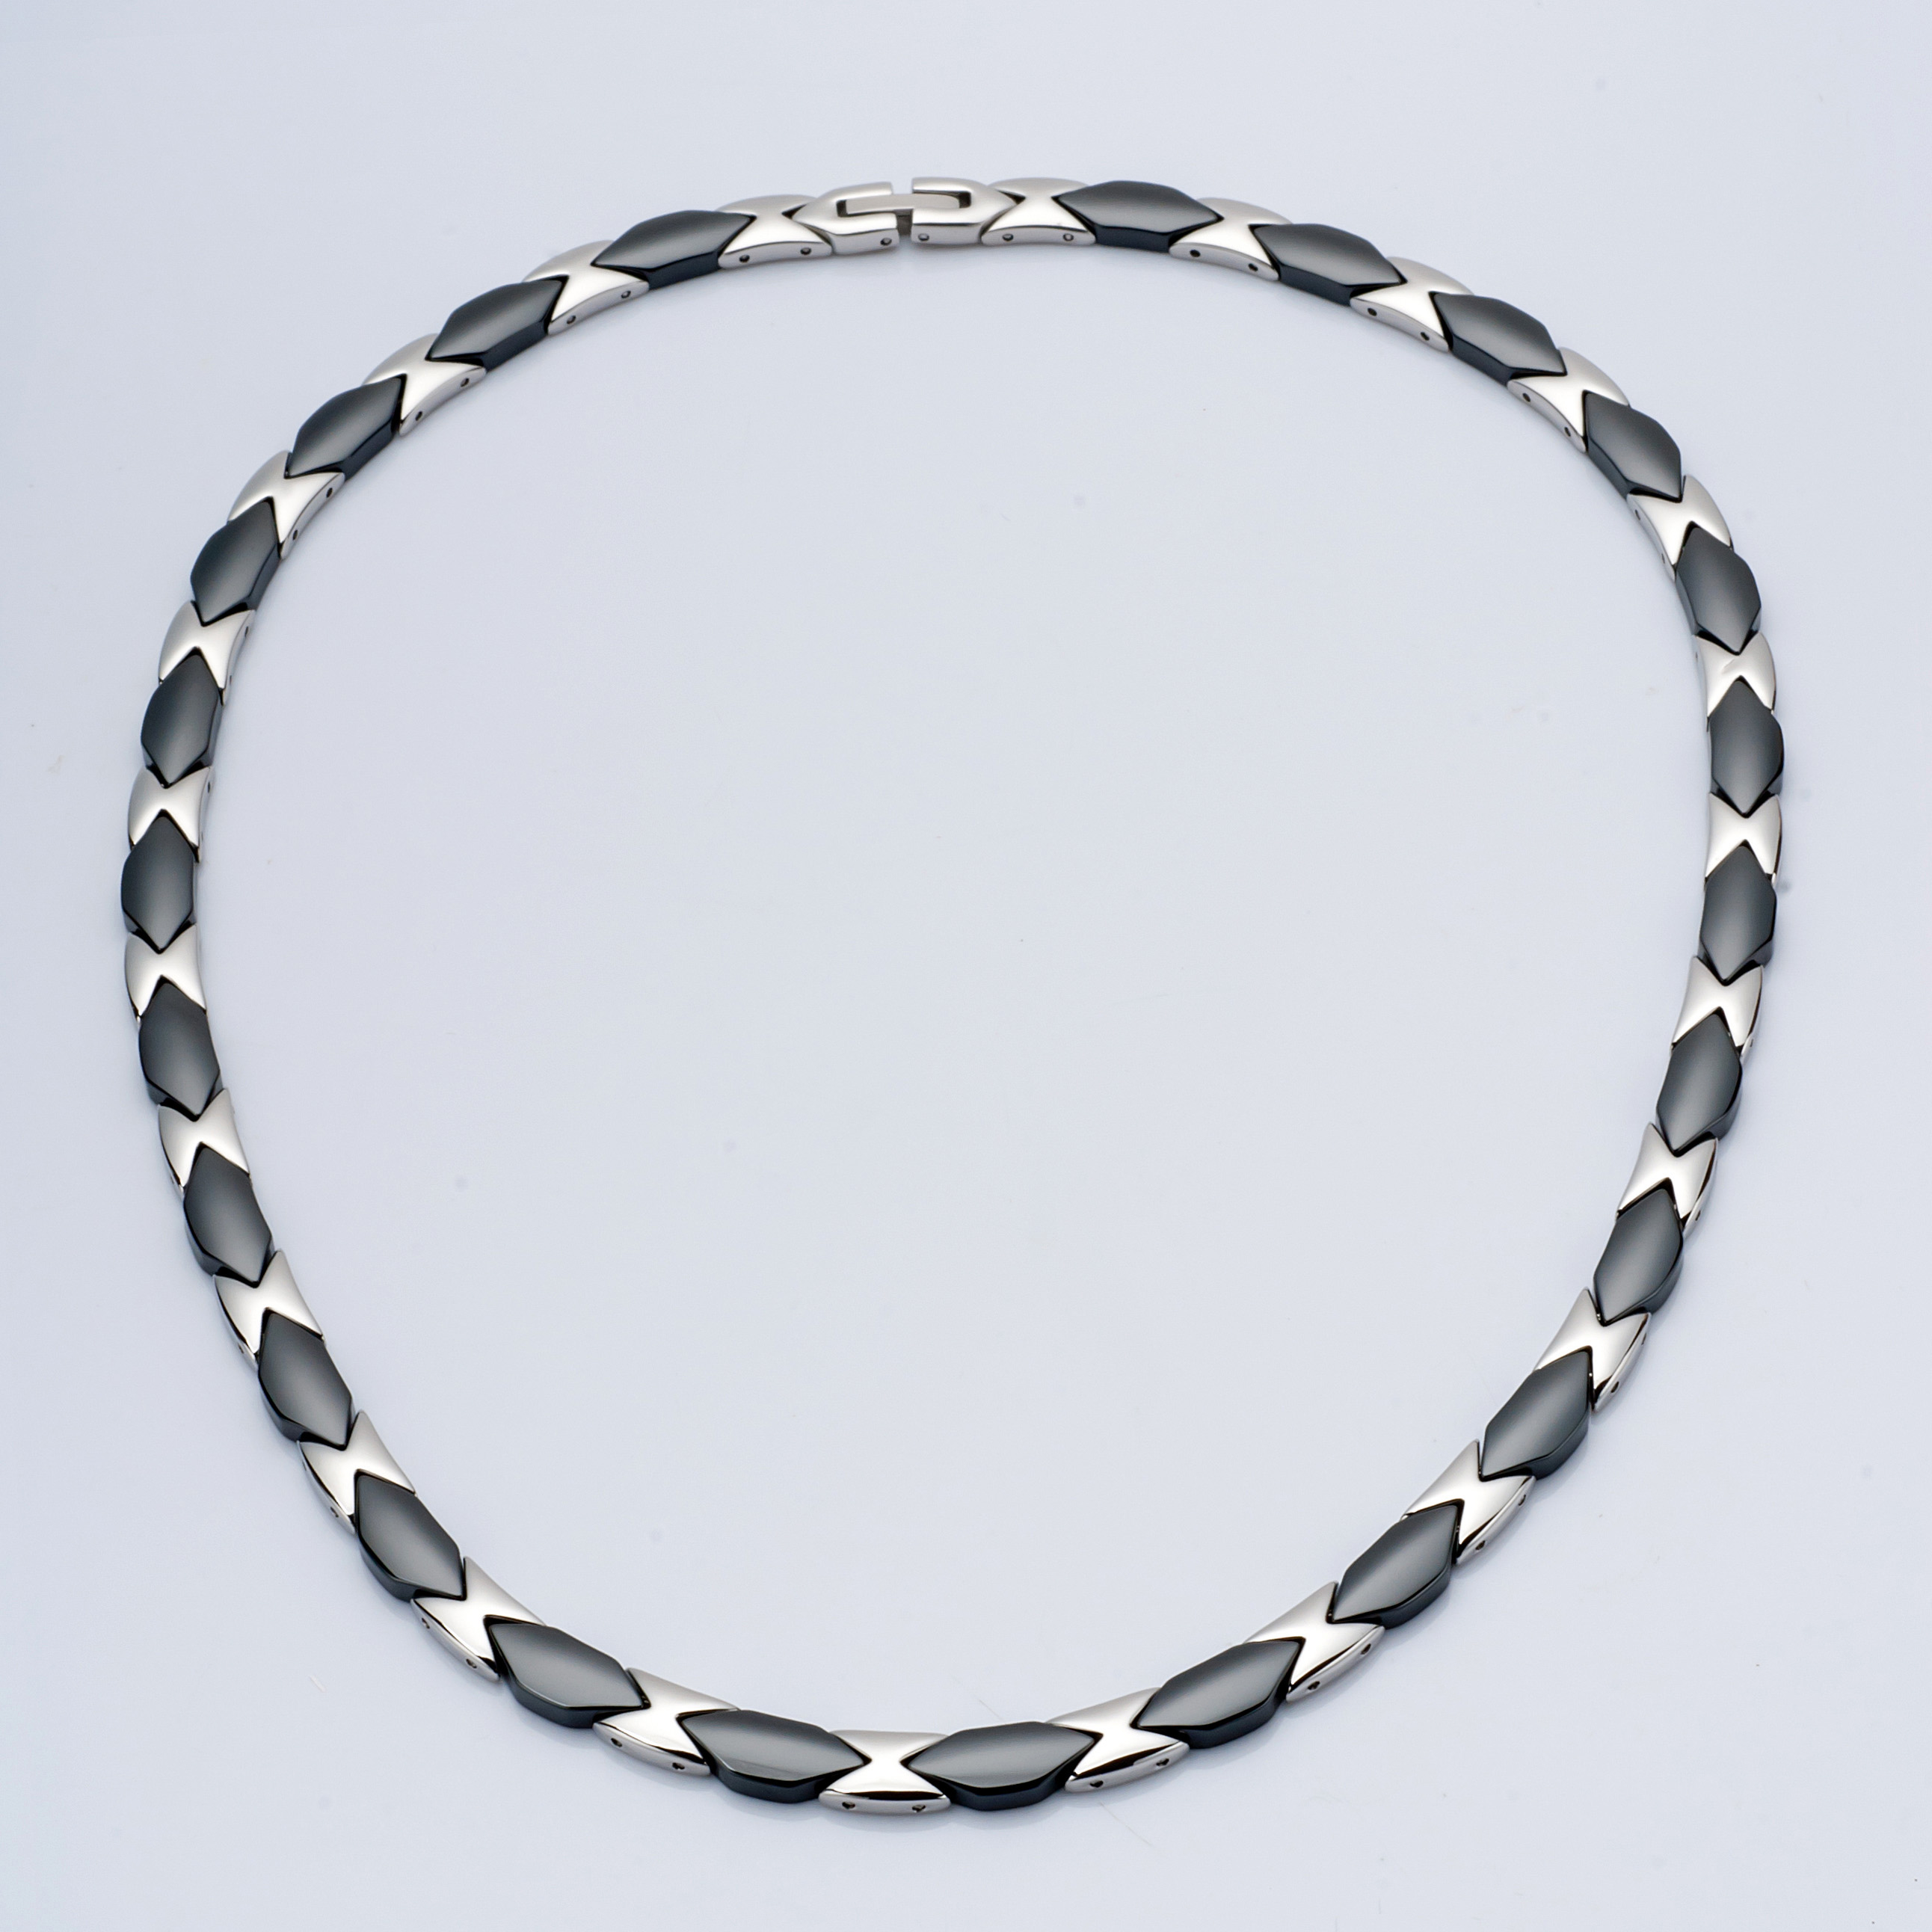 WCN0004-Polished Tungsten Alloy Necklace